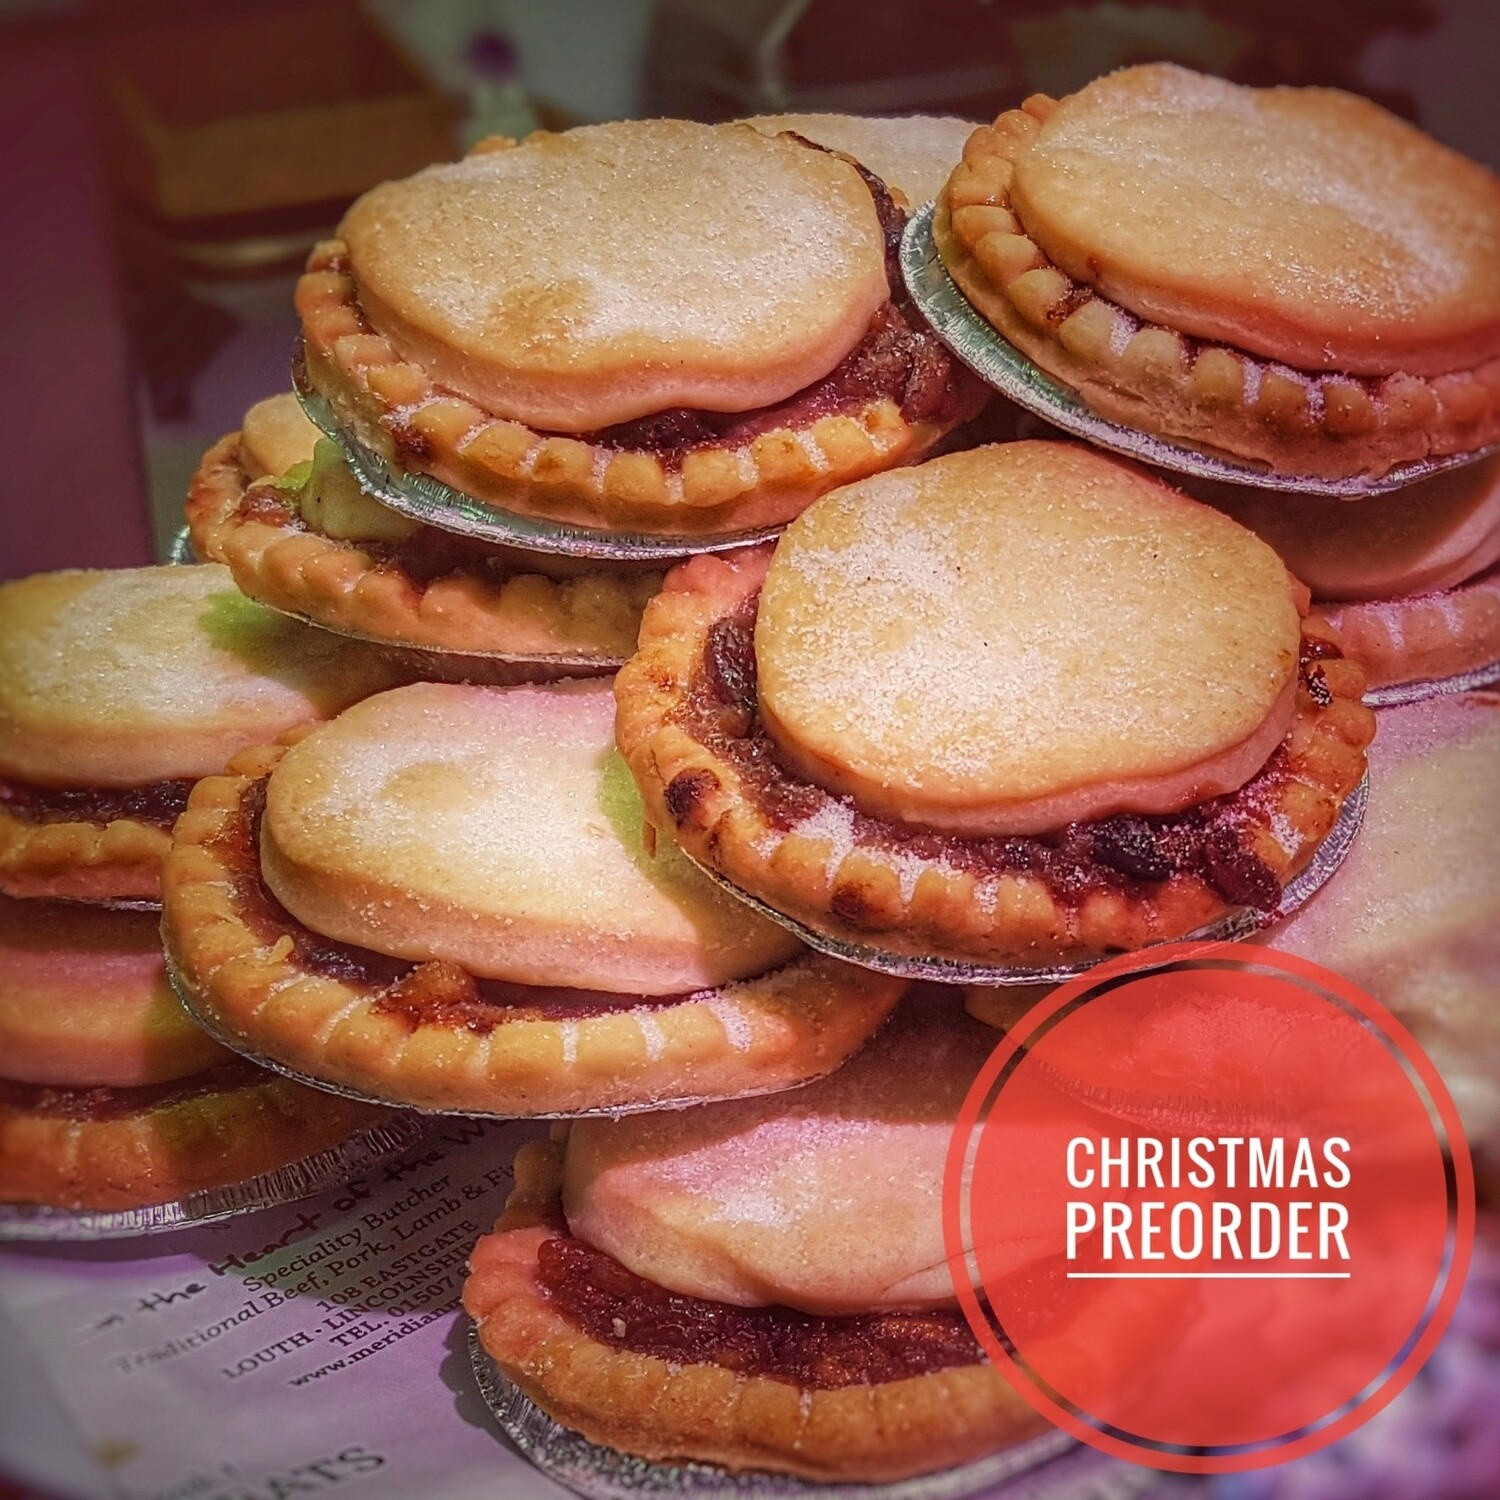 Preorder Homemade Mince Pies